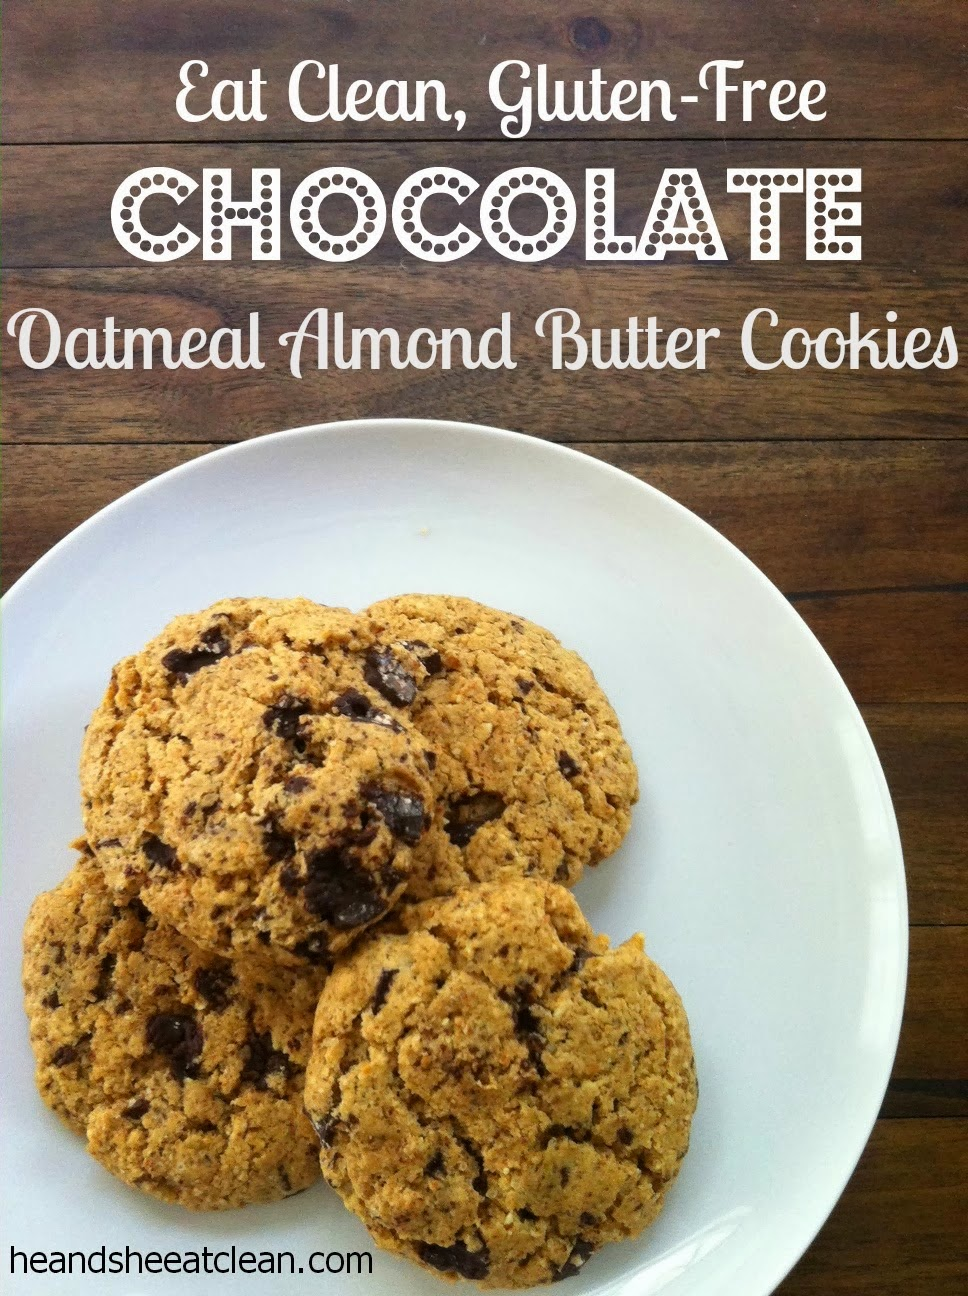 Chocolate Oatmeal Almond Butter Cookies | He and She Eat Clean